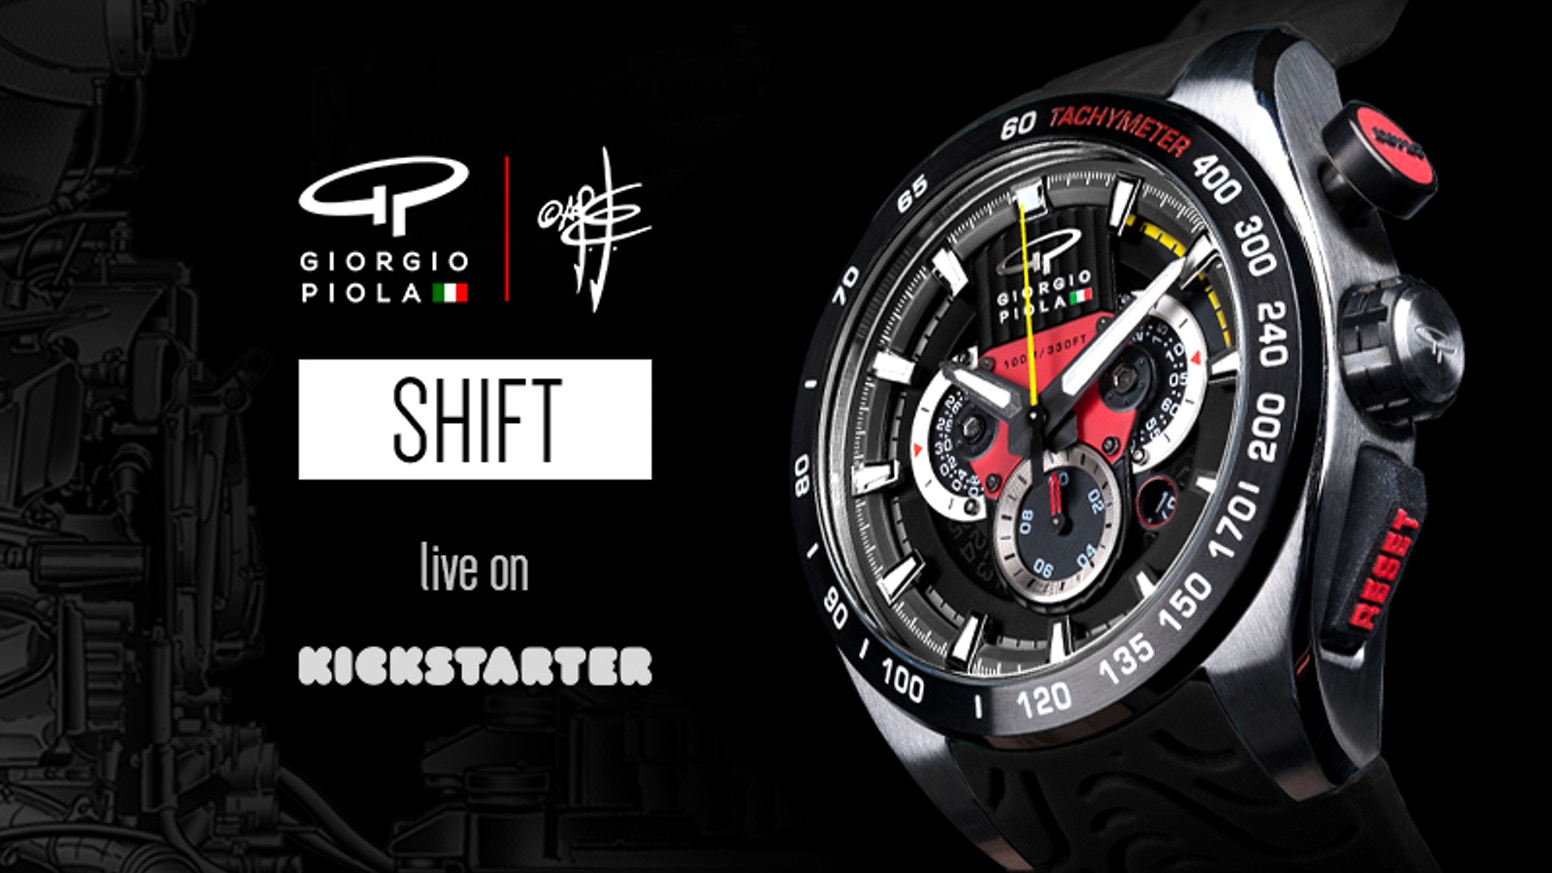 A Formula 1 inspired watch designed by tech-drawing legend Giorgio Piola